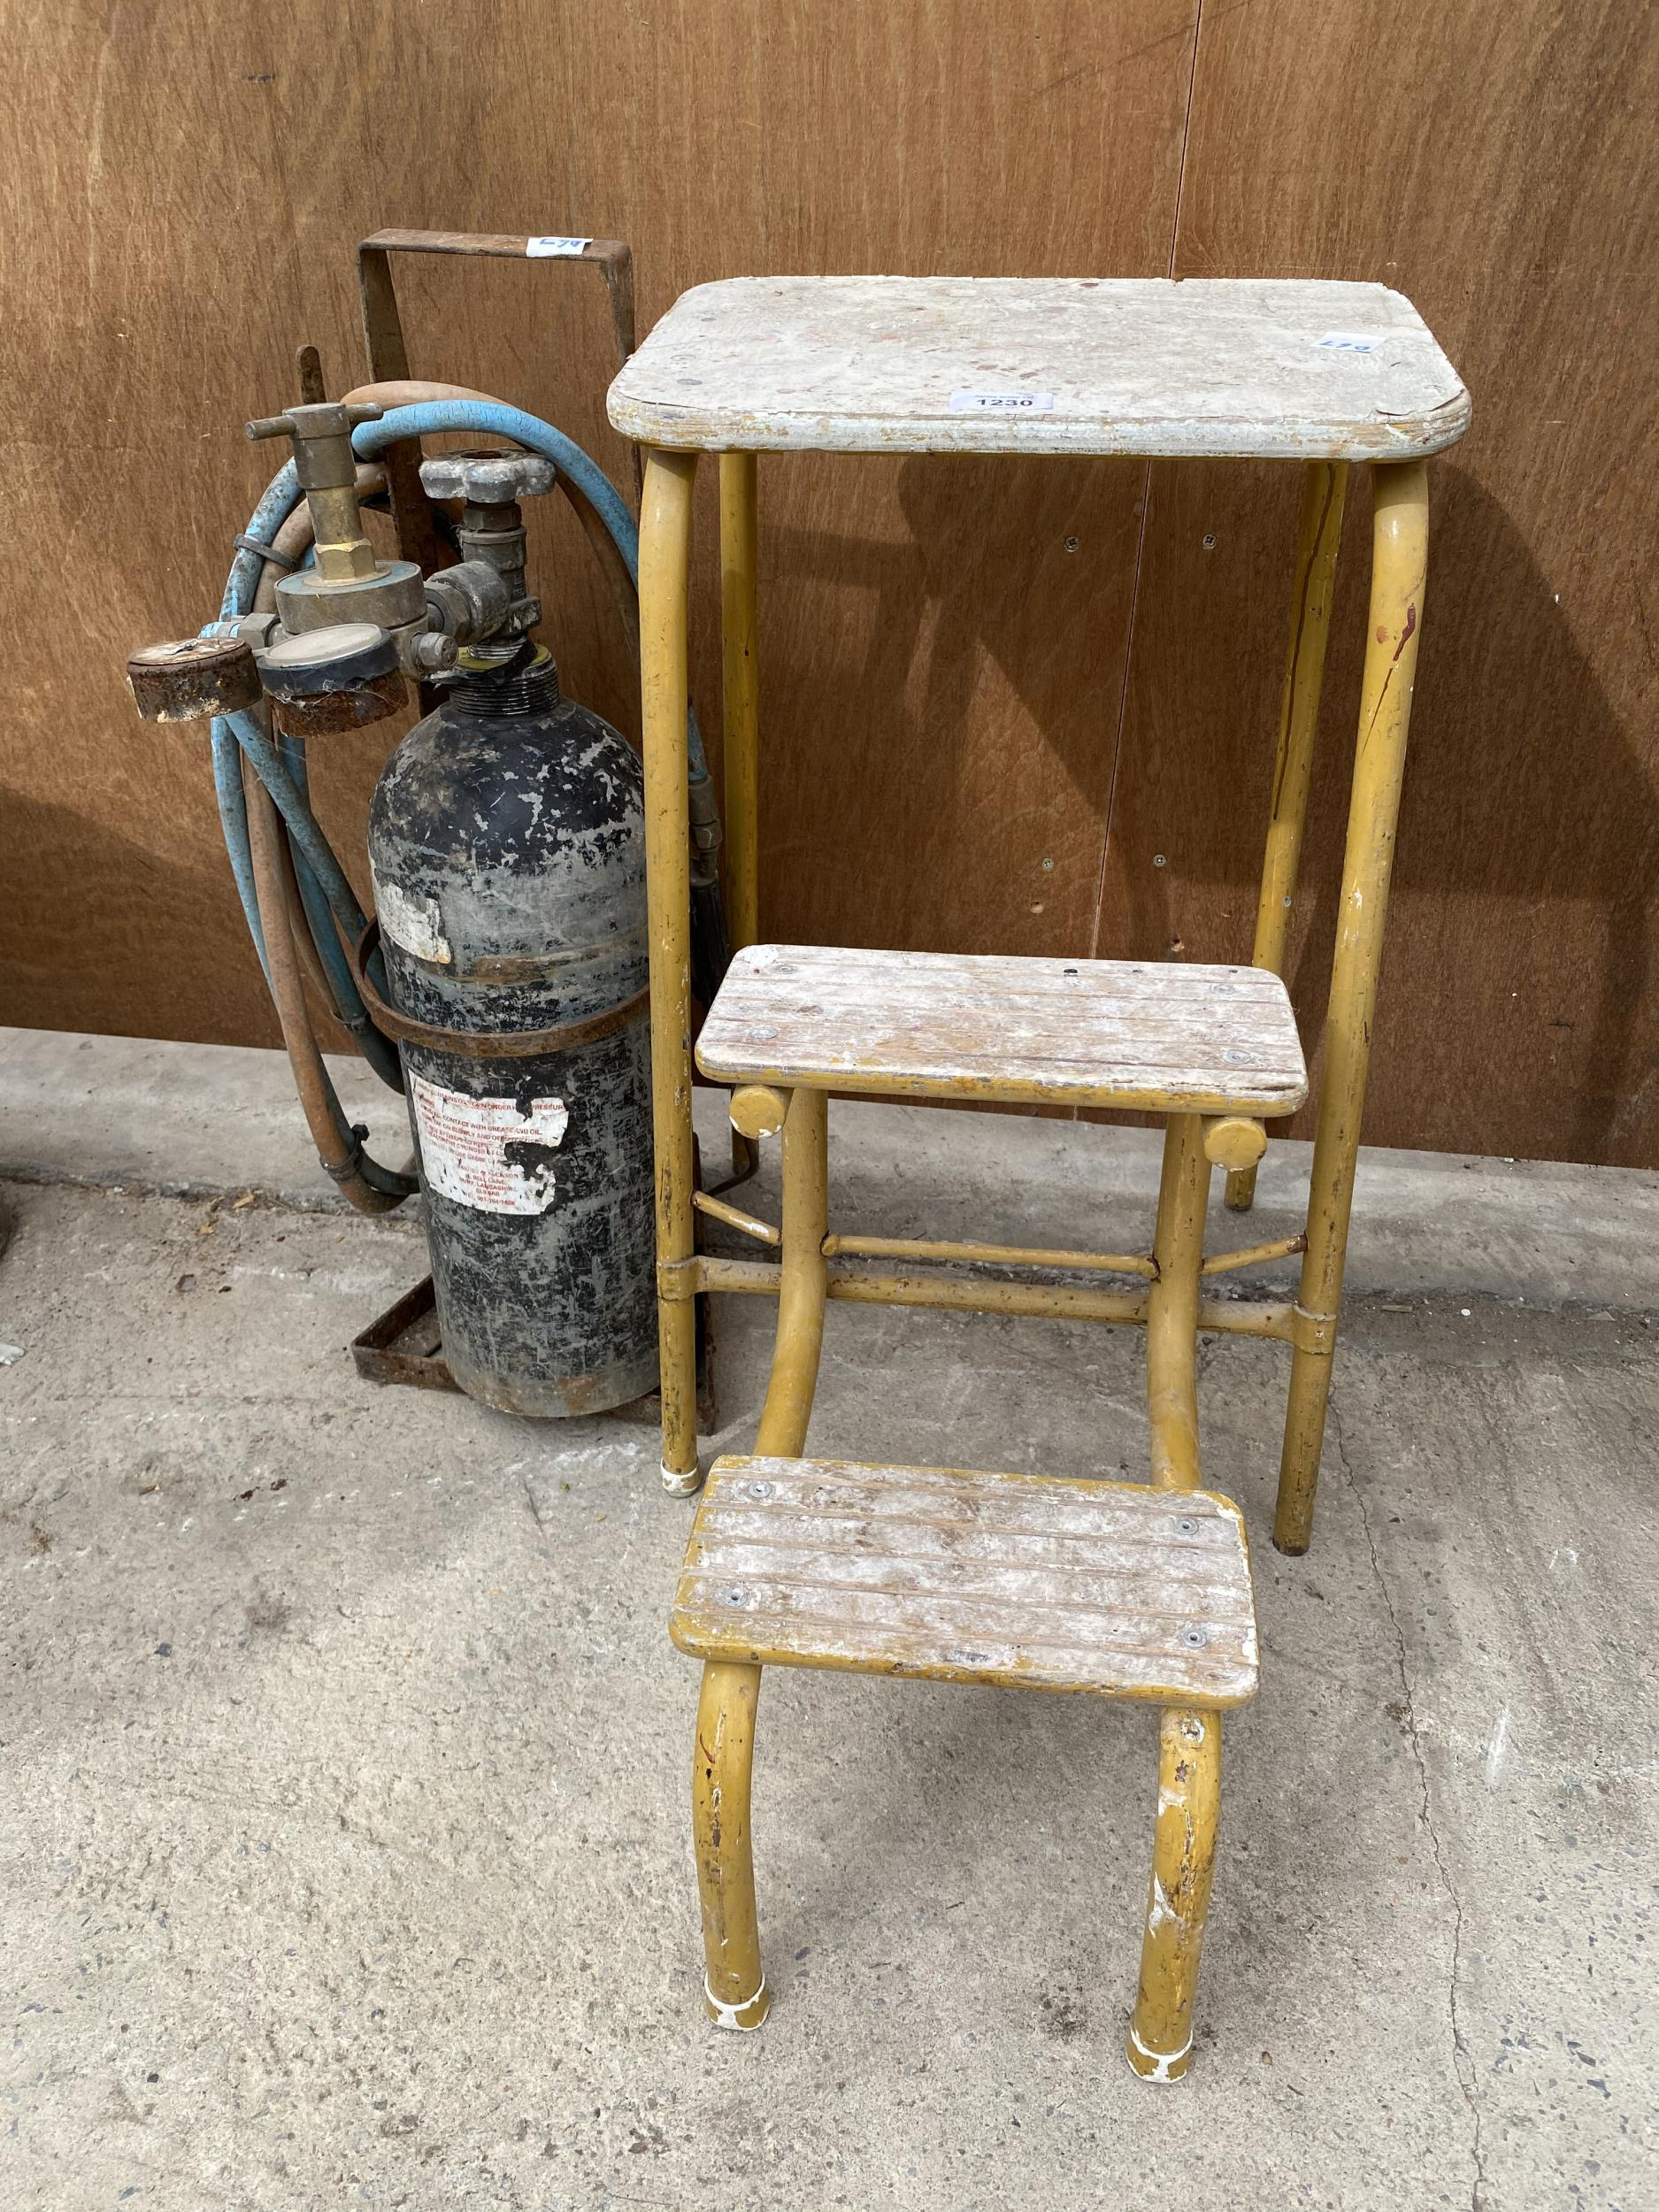 A VINTAGE KITCHEN STEP AND A GAS CUTTING BOTTLE